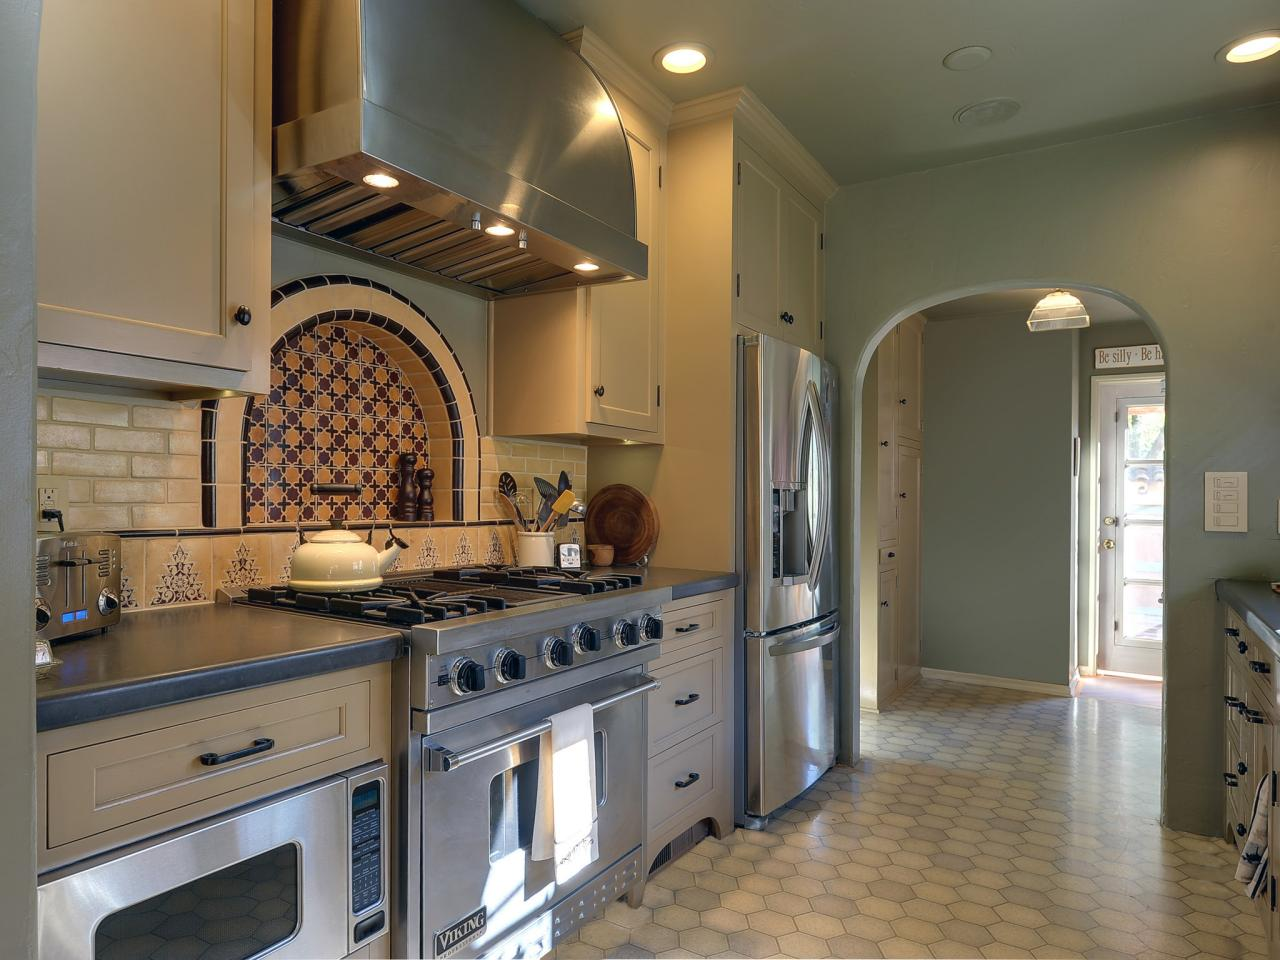 Show Me Kitchen Designs Mediterranean Kitchen Design Pictures And Ideas From Hgtv